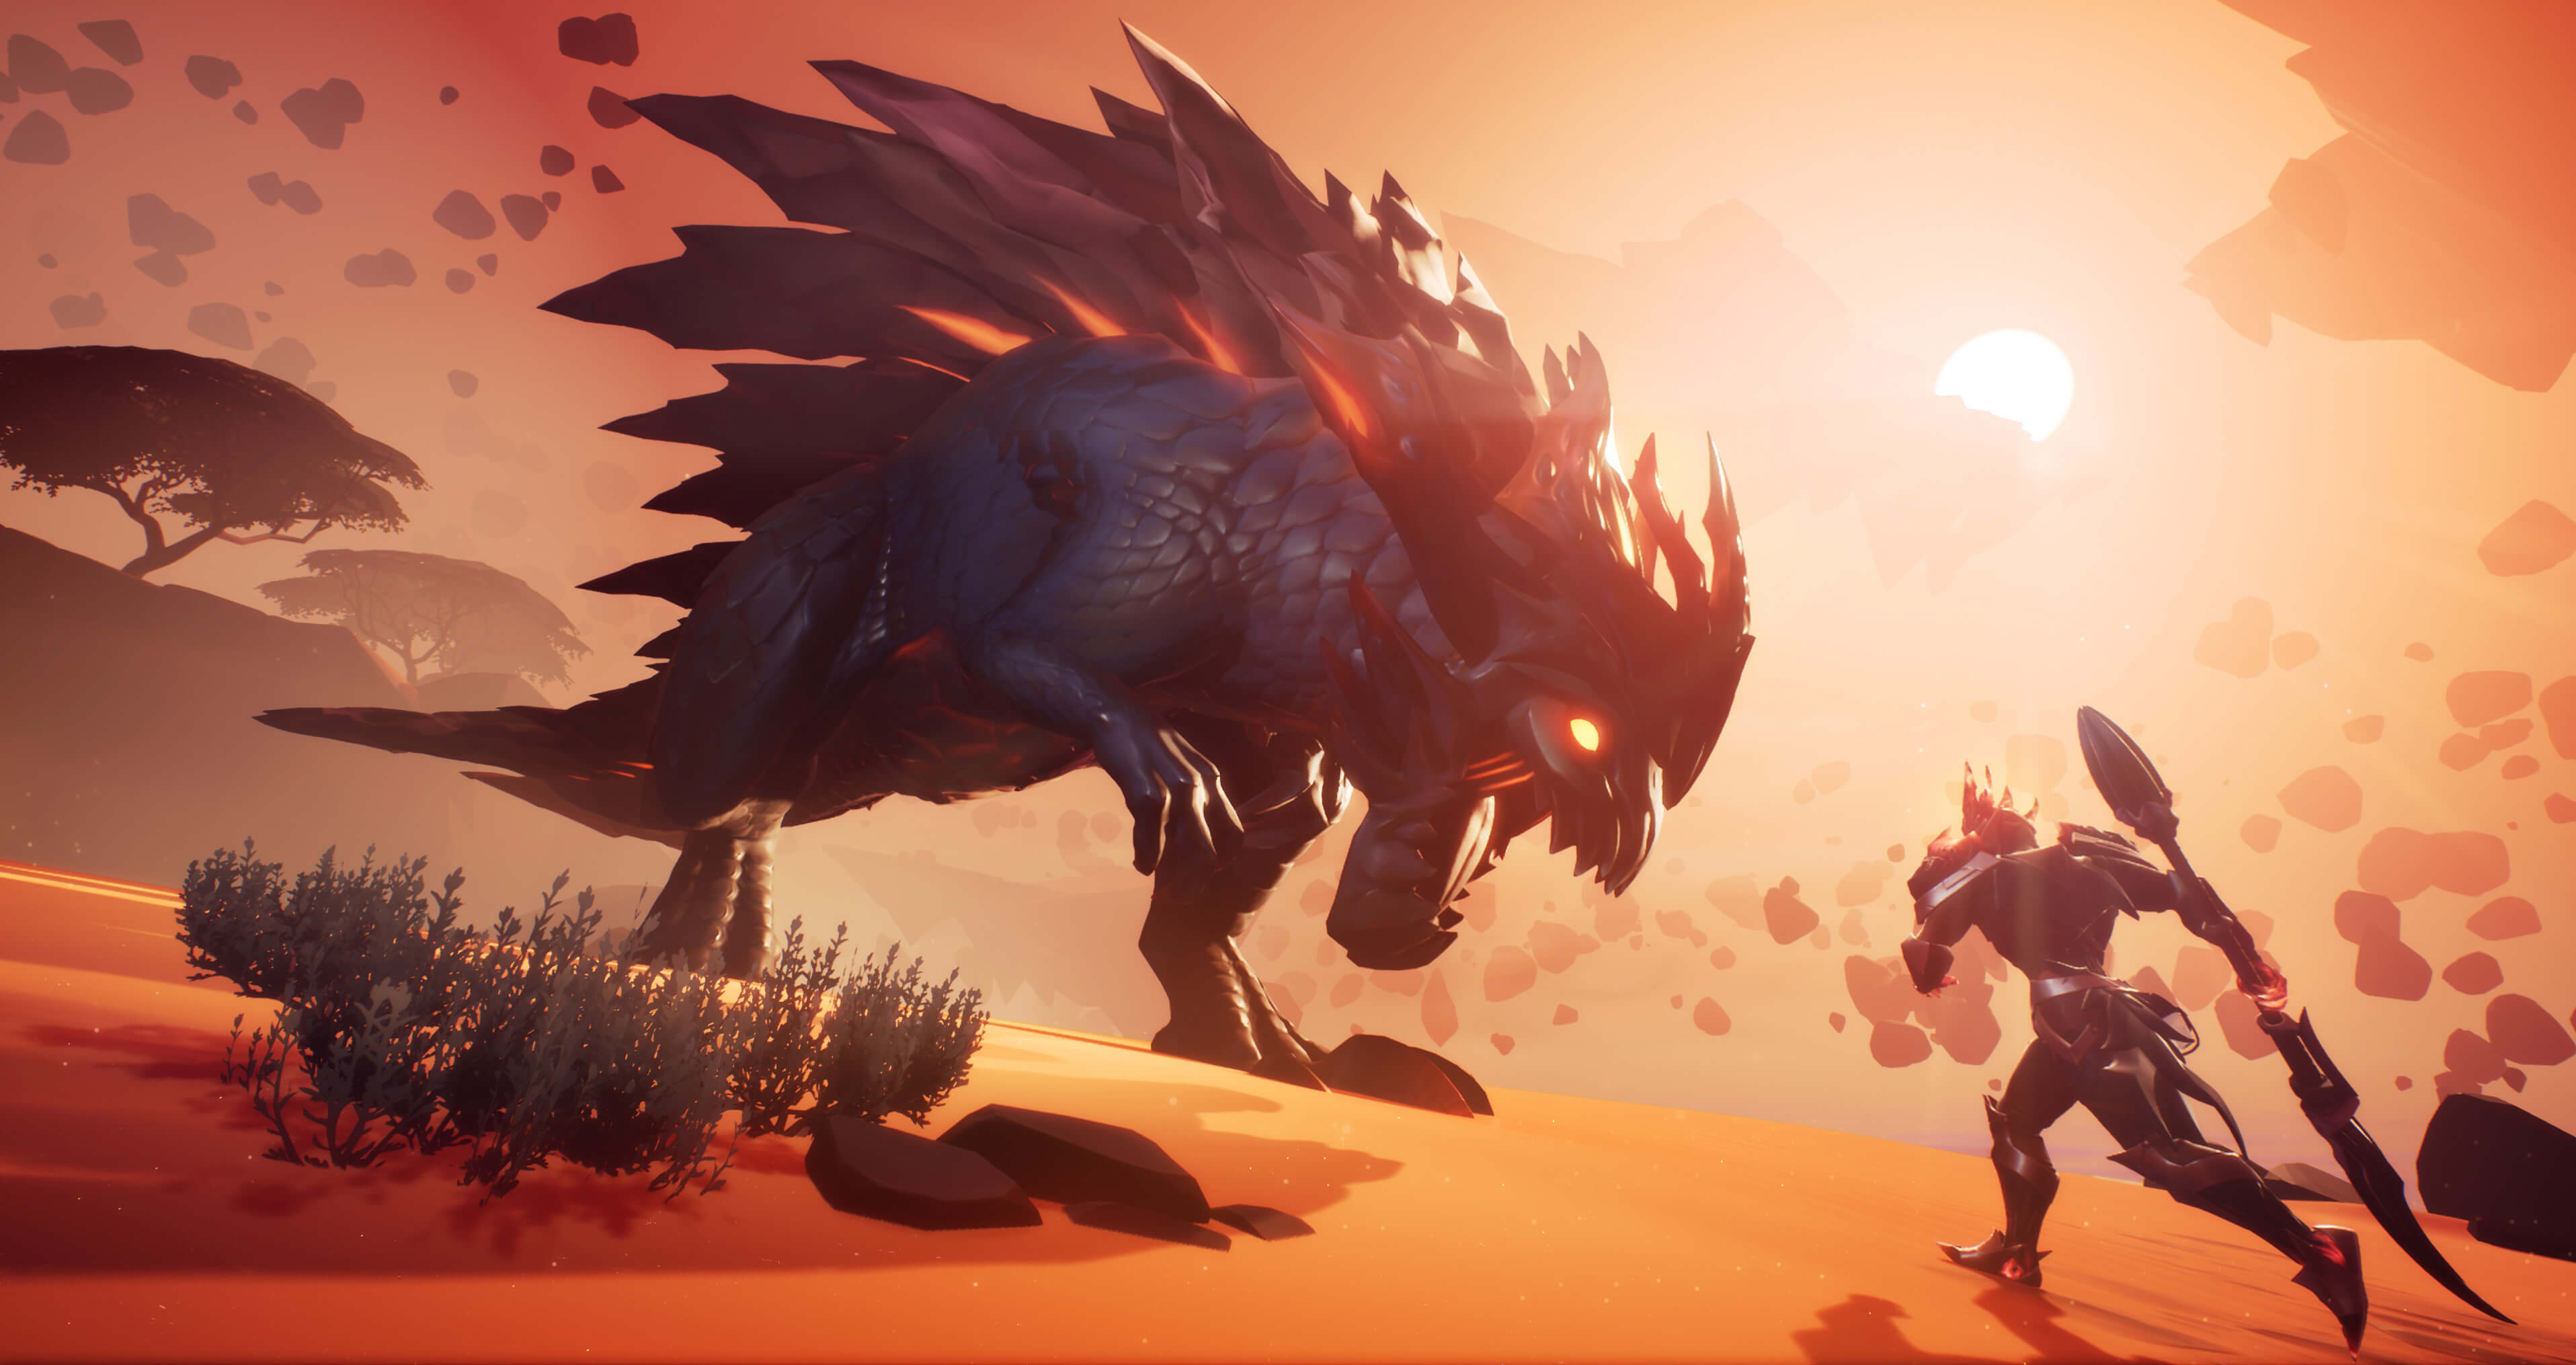 dauntless-screenshot-hellion-fullsize.jpg